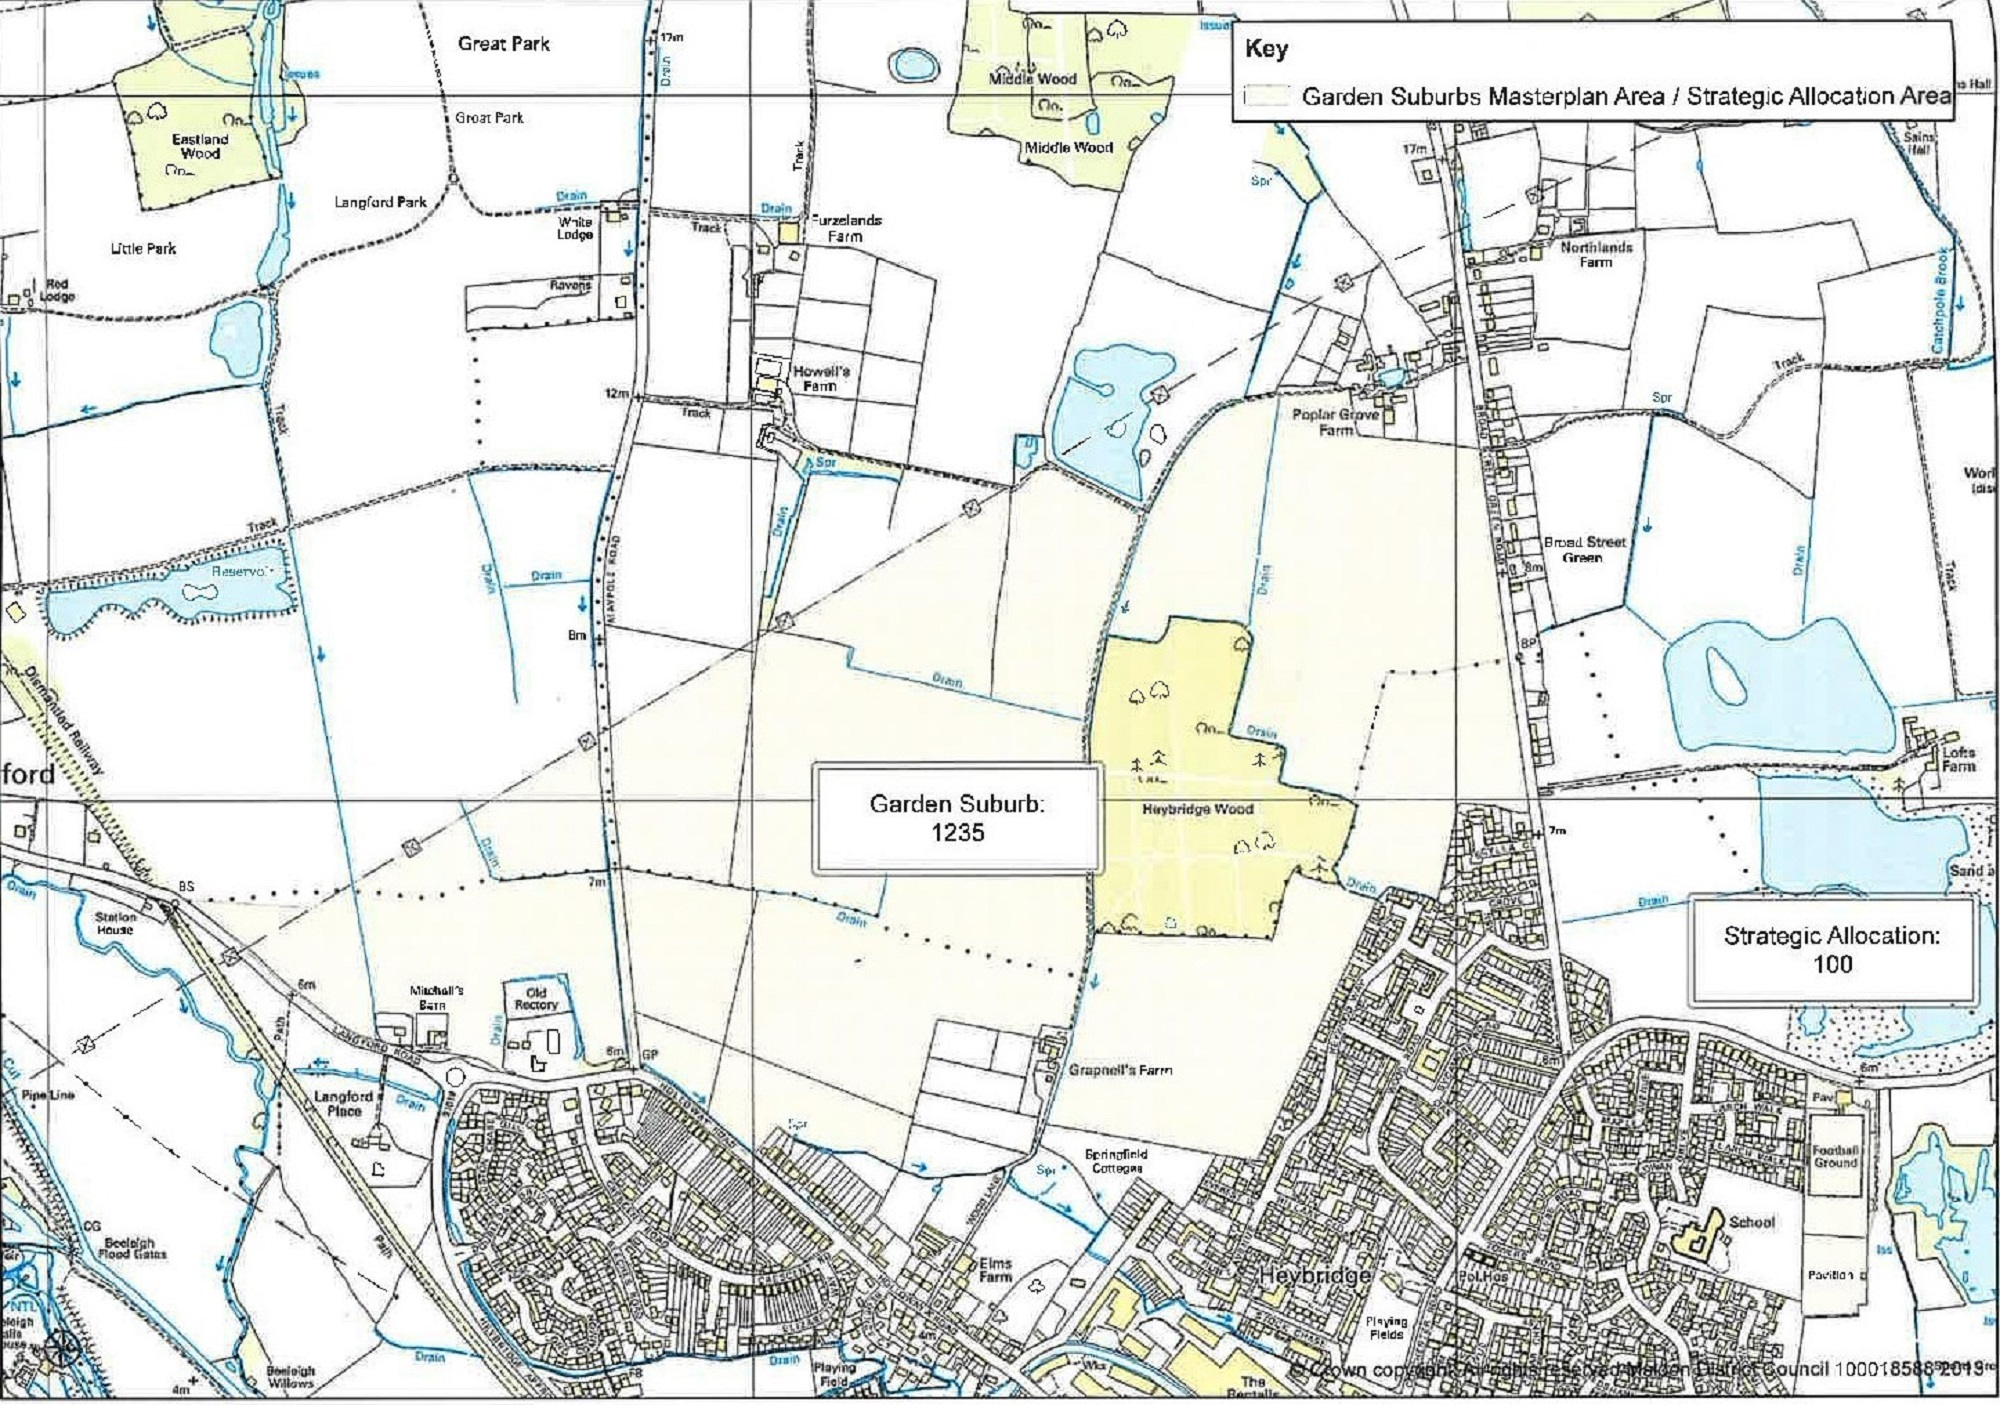 A map showing where the 1, 235 homes could be allocated